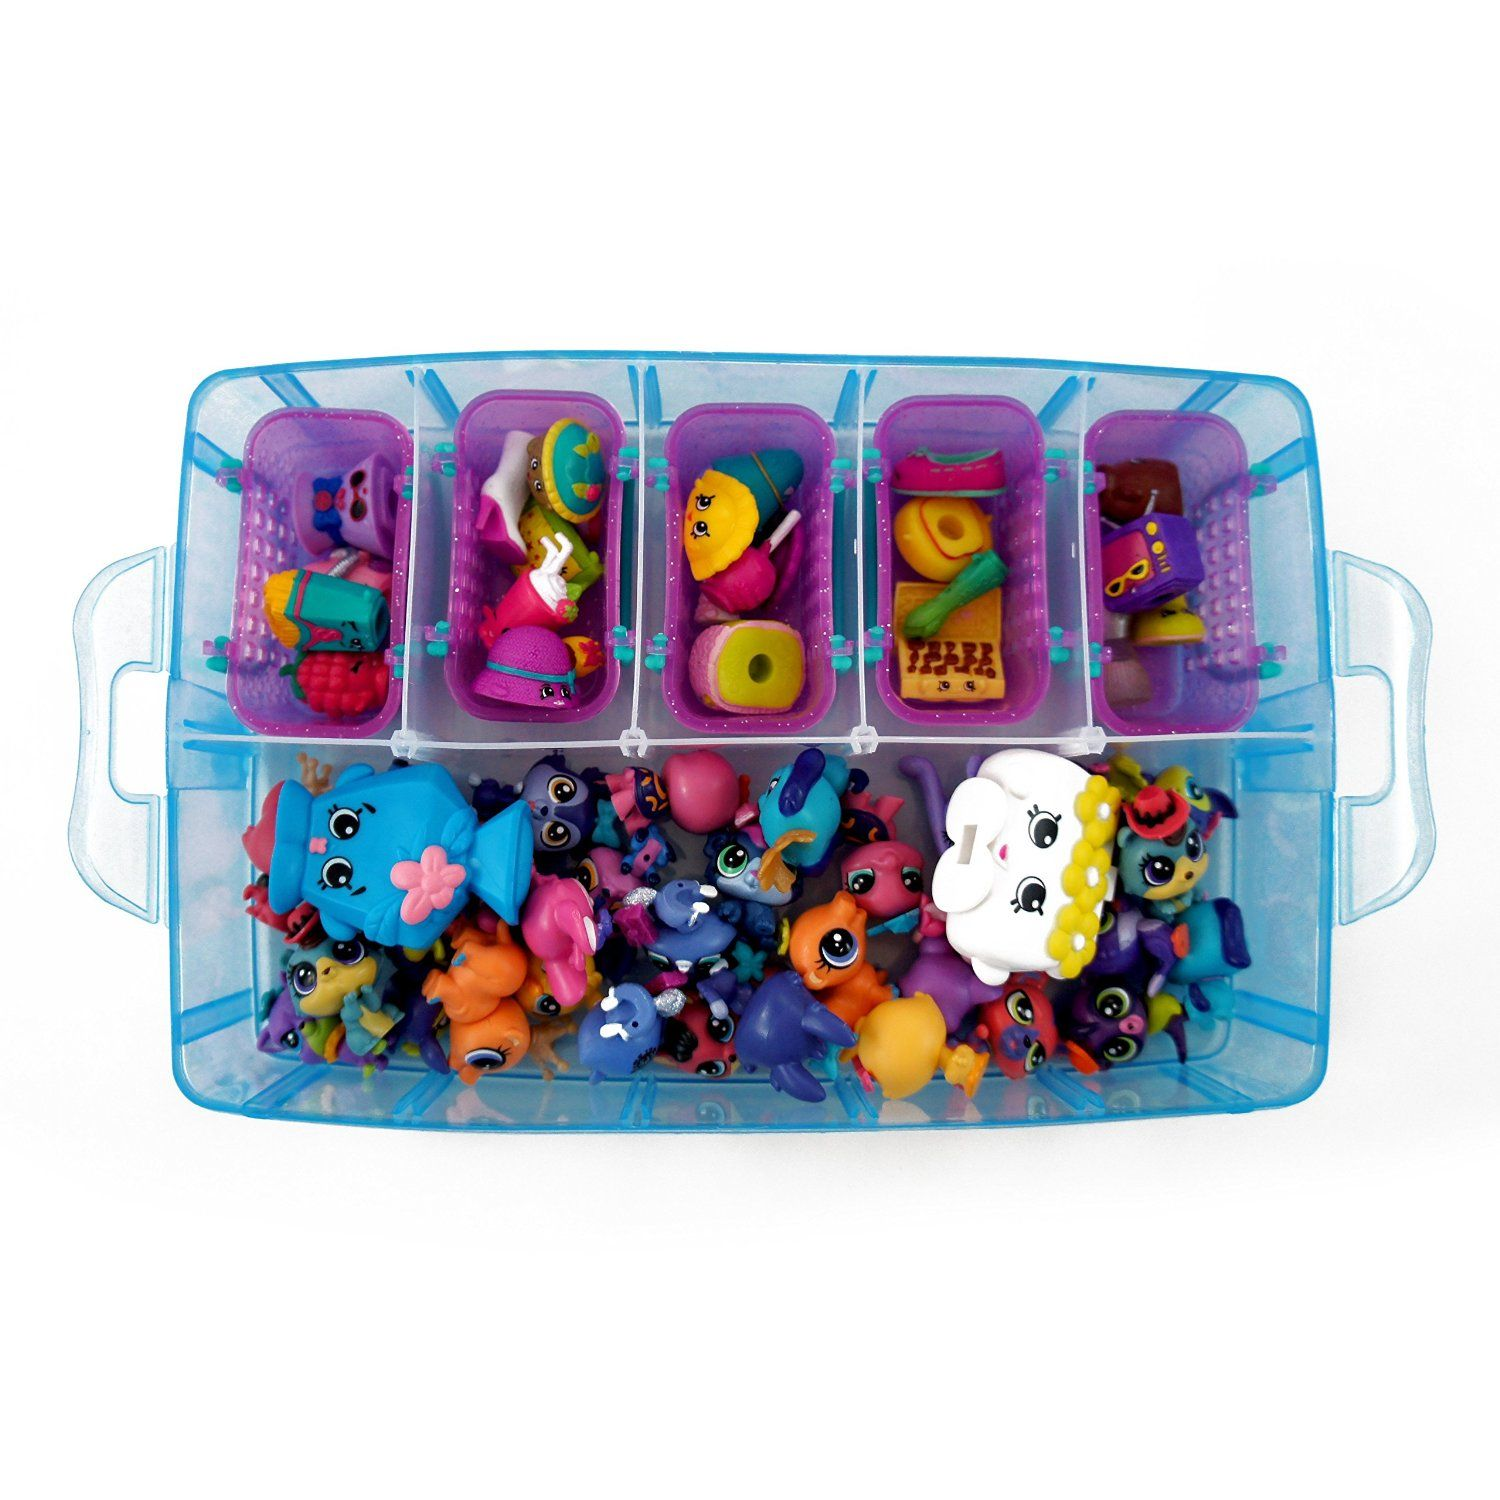 Amazon.com: Stackable Storage Container By Bins U0026 Things, Perfect For  Shopkins, Littlest Pet Shop, Rainbow Loom, Palace Pets And Small Toys    With 30 ...